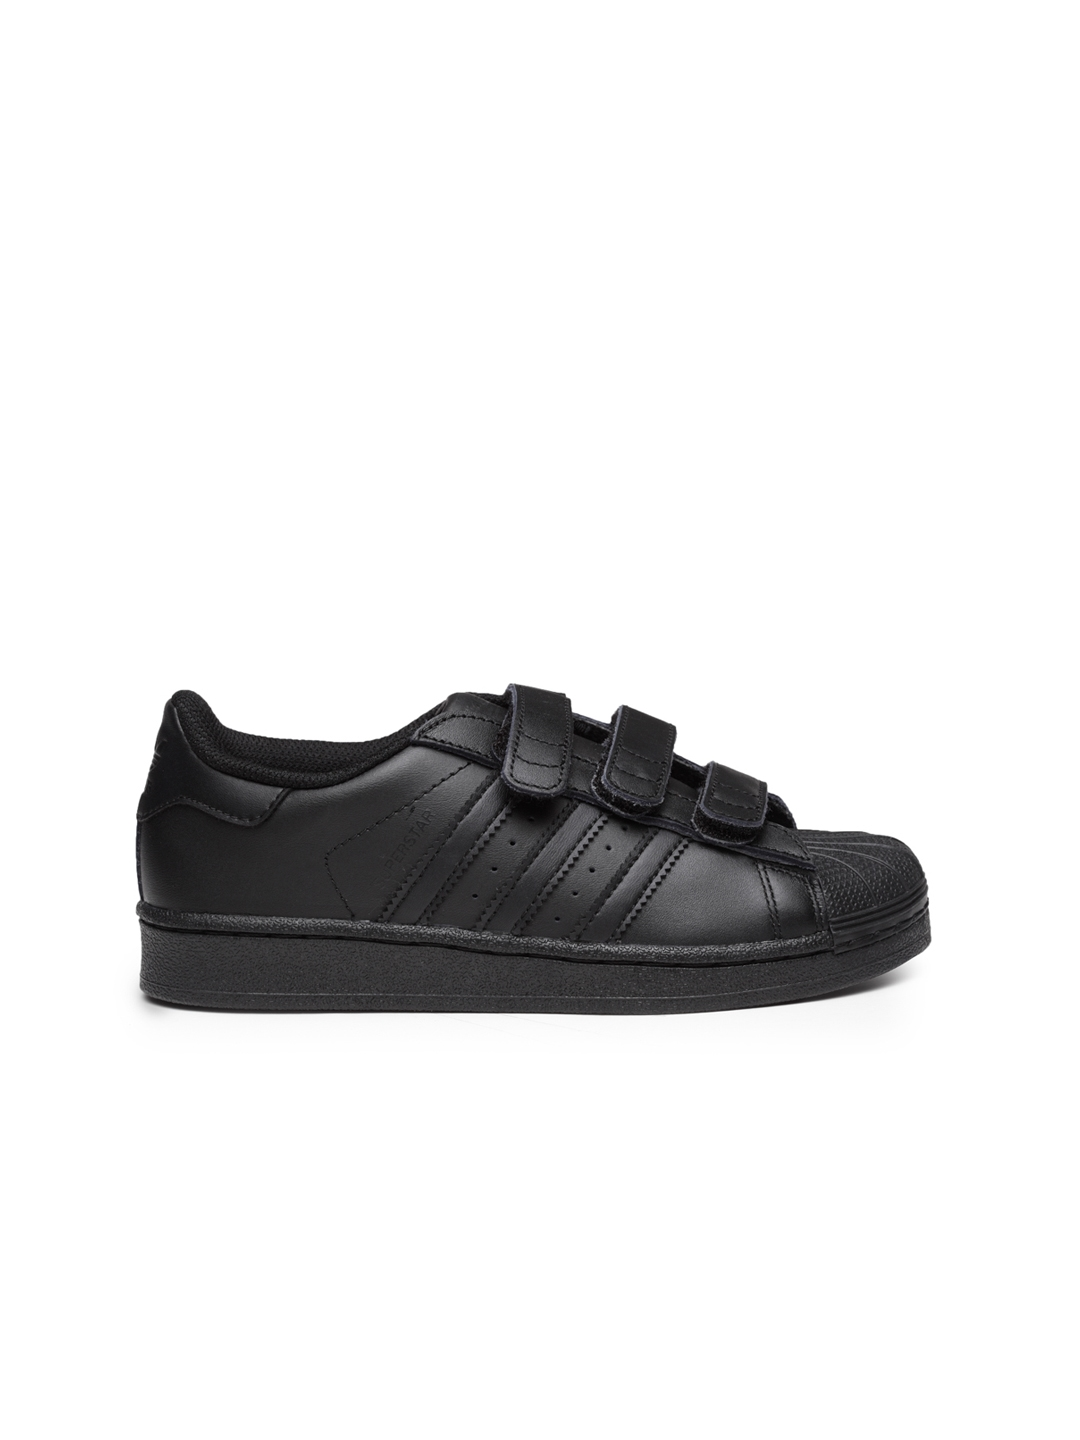 low priced f5621 e94b4 ADIDAS Originals Kids Black Superstar Foundation CF C Sneakers